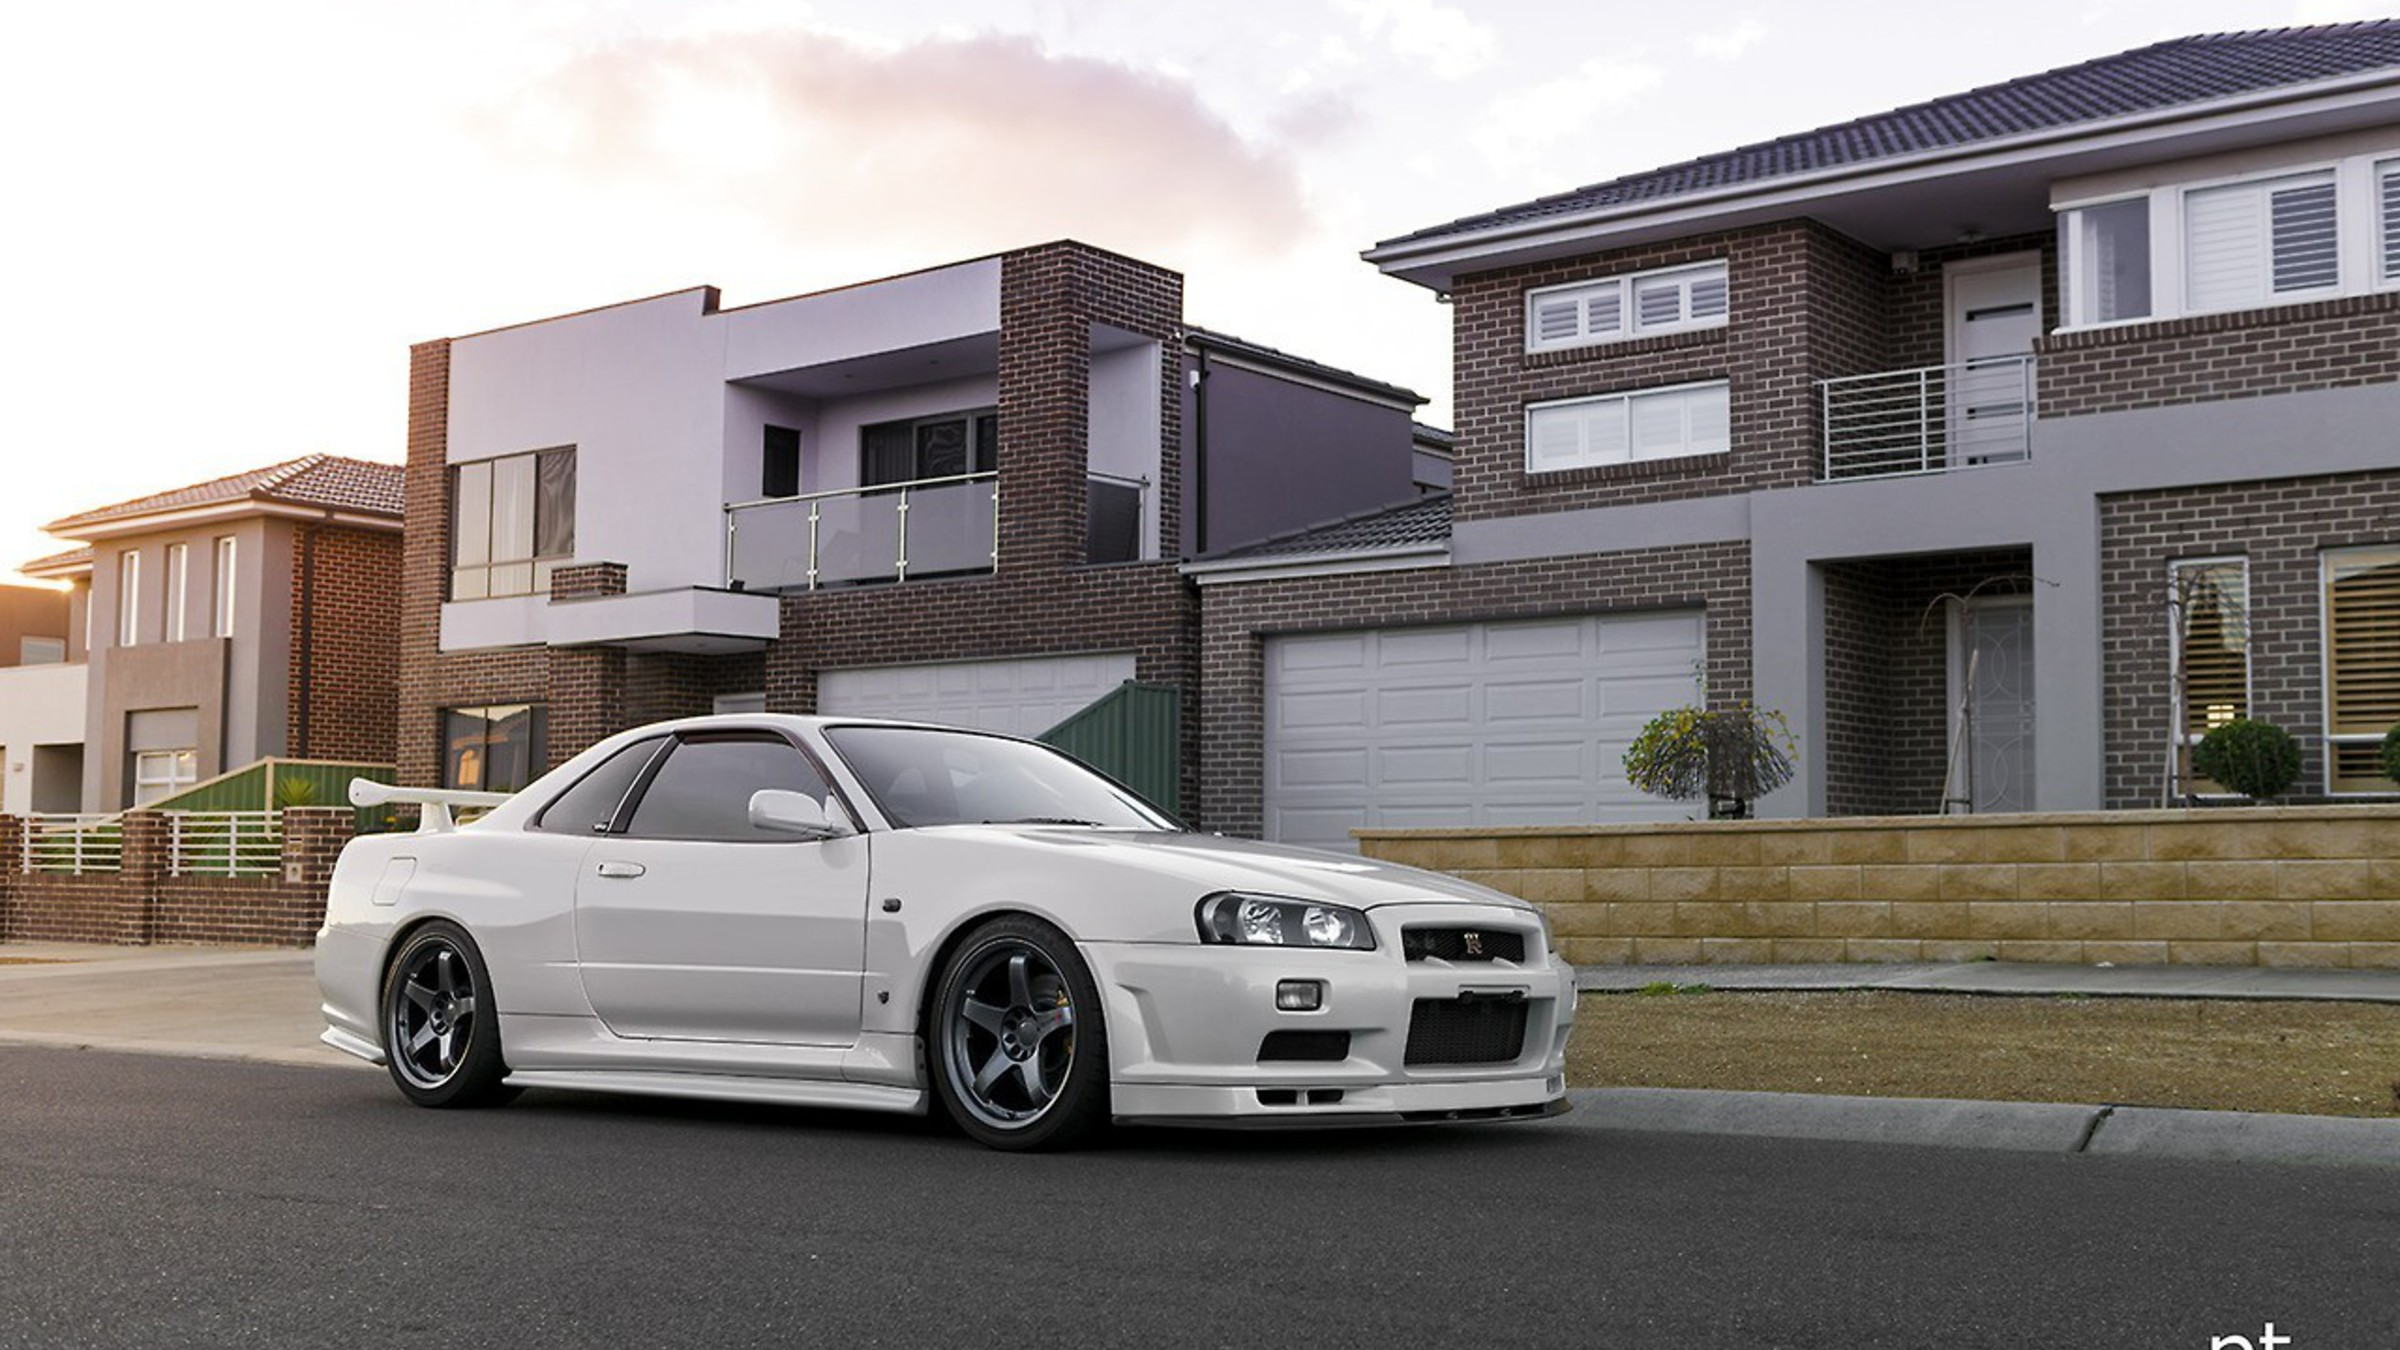 Japanese Cars Jdm R34 Skyline Wallpaper Allwallpaper In 4082 Pc